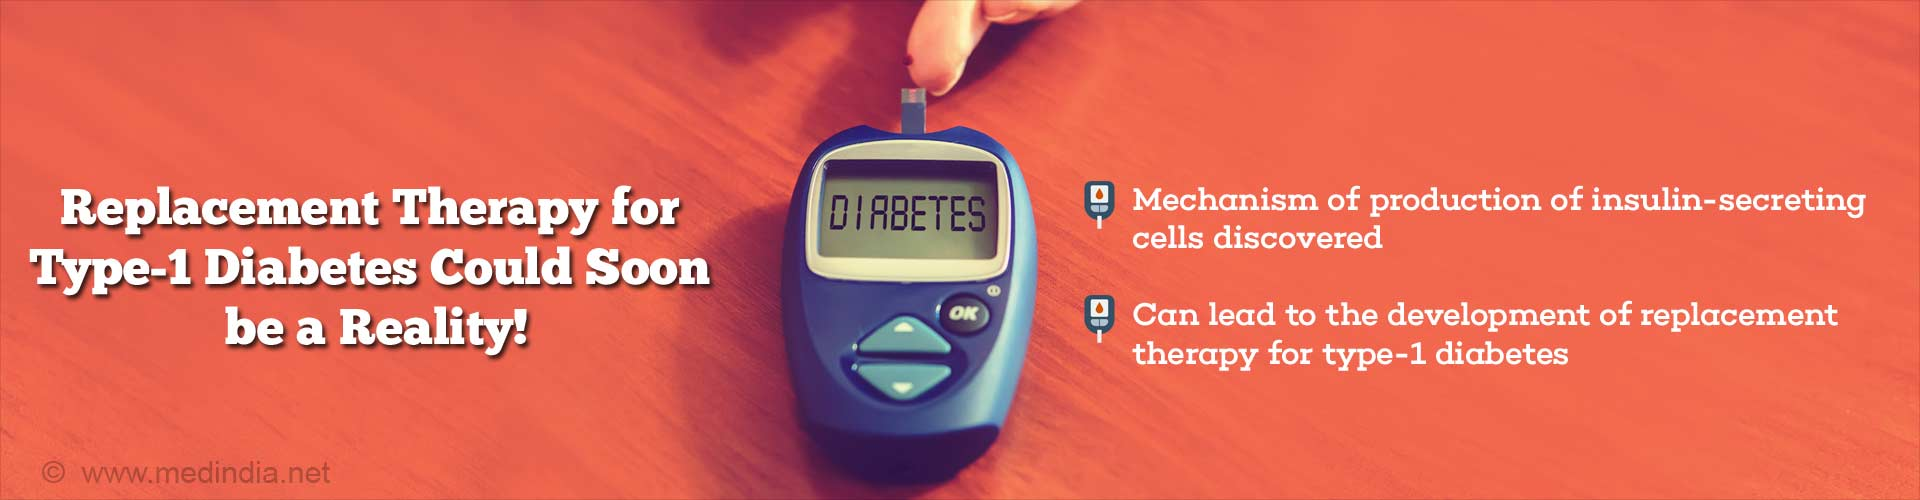 One Step Closer to Developing Replacement Therapy for Type-1 Diabetes